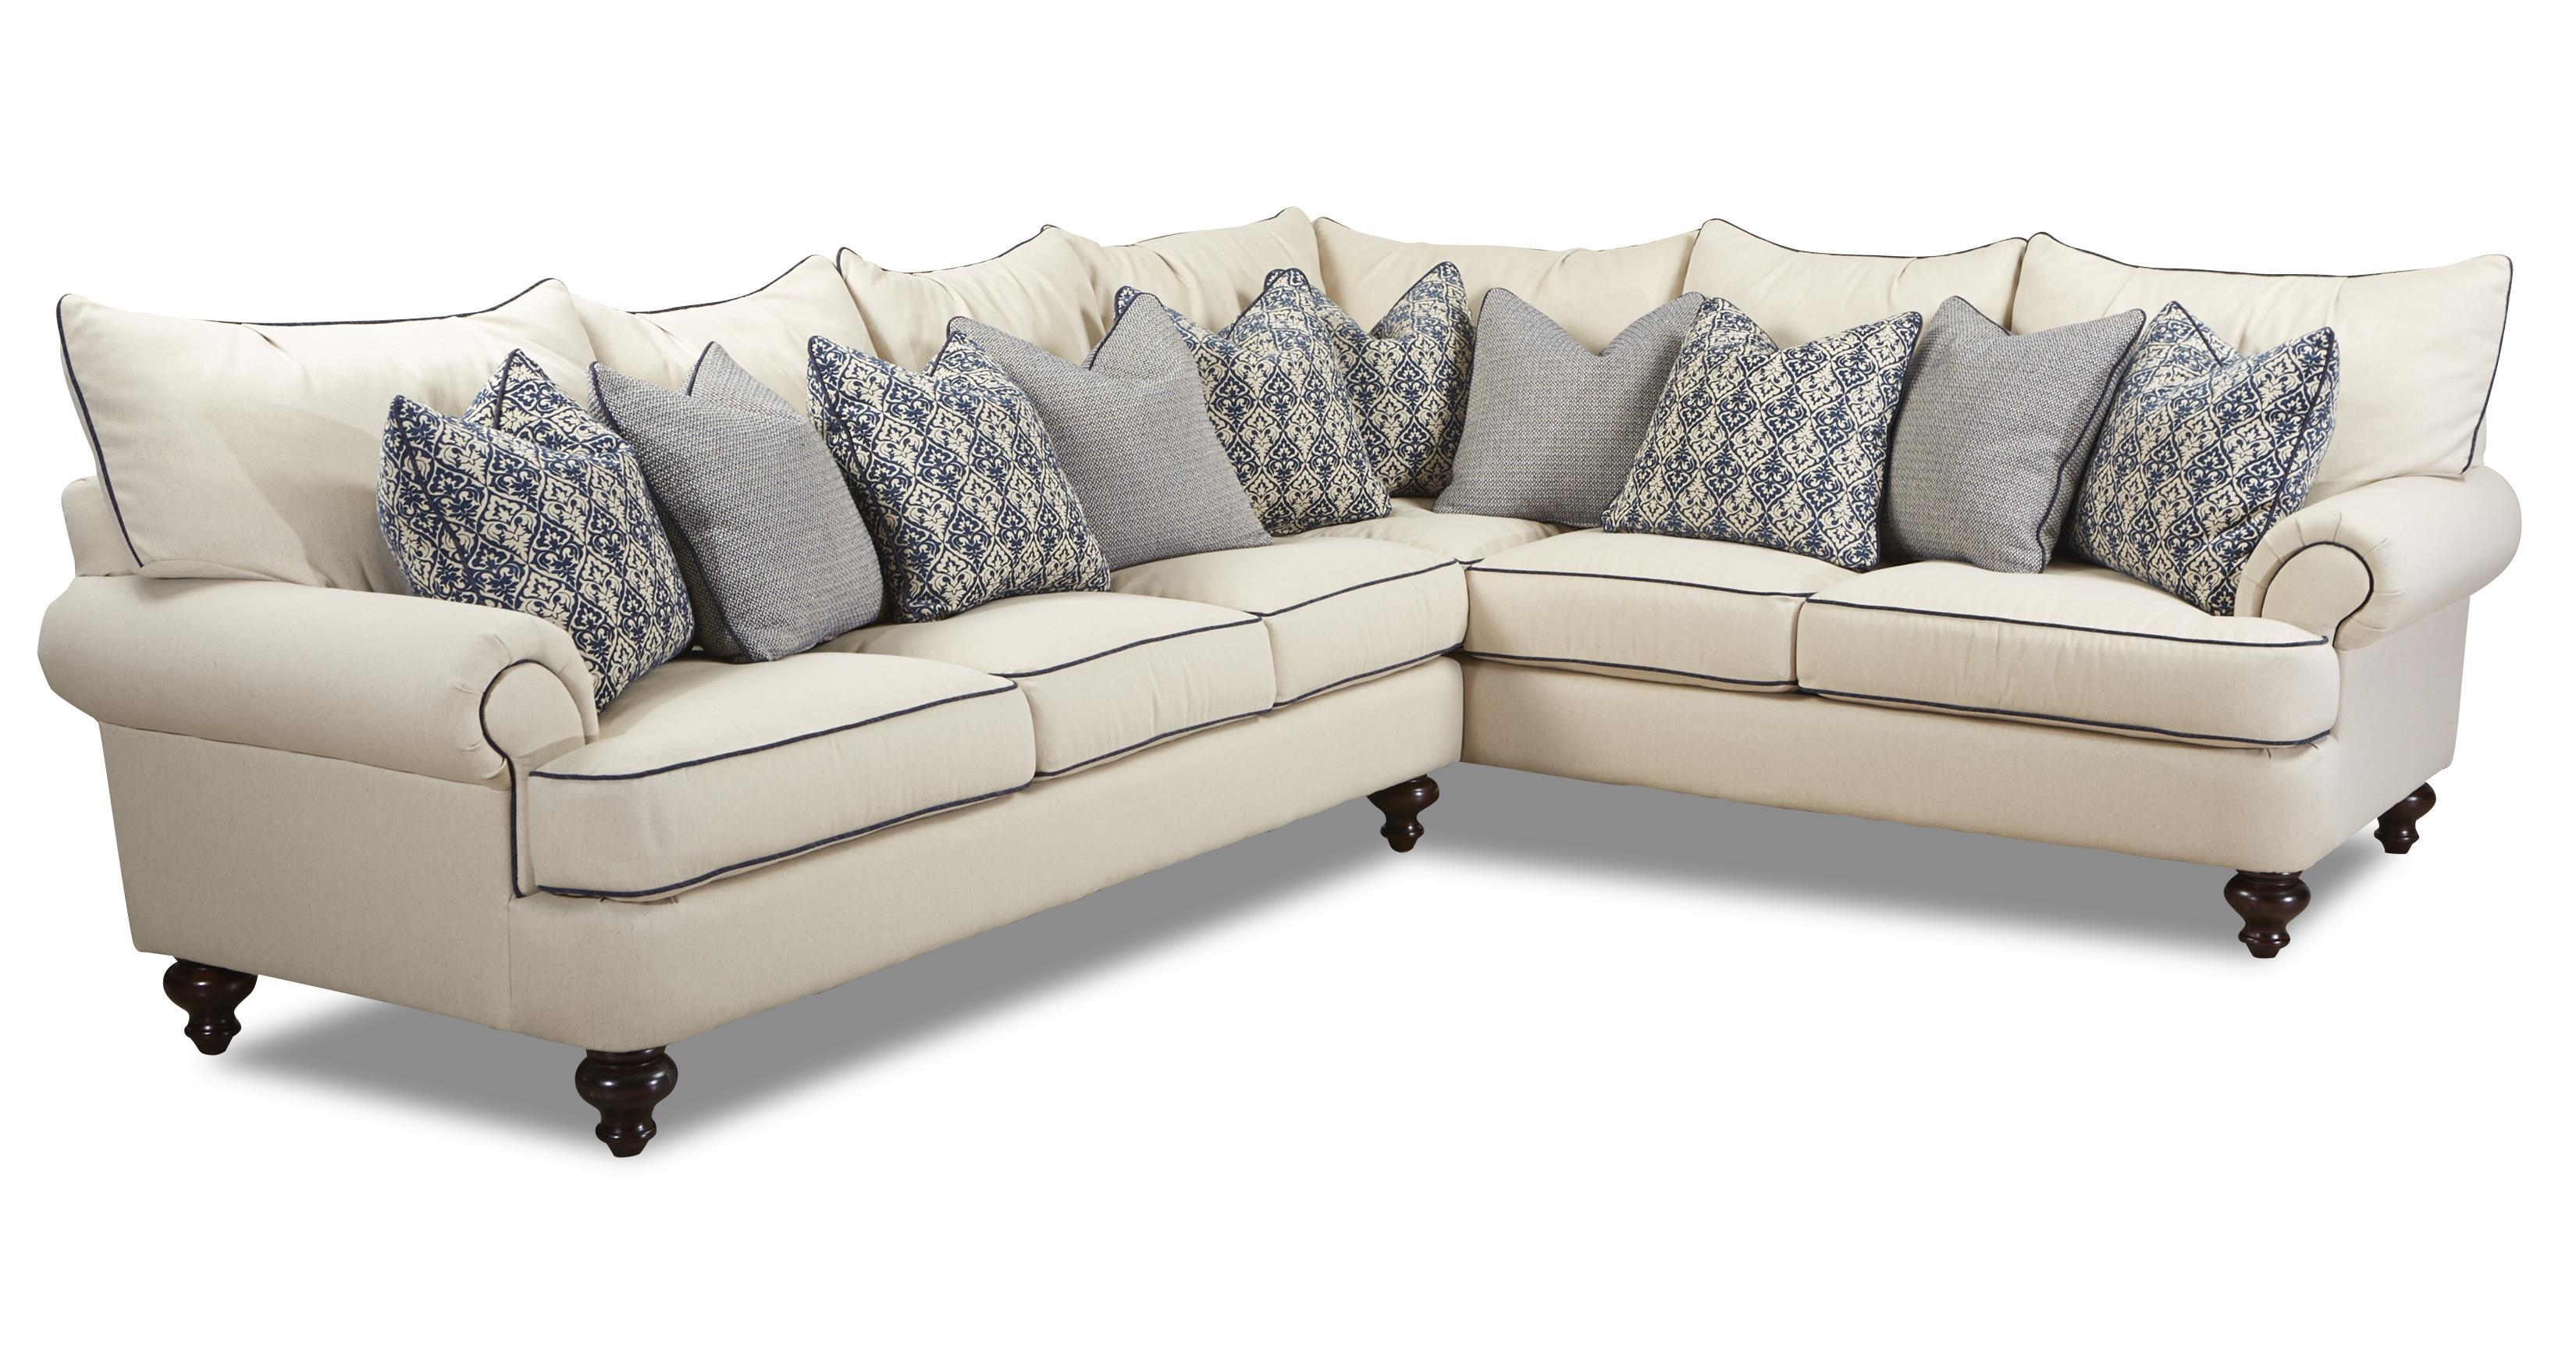 Sofa Shabby Chic 20 43 Choices Of Shabby Chic Sectional Sofas Sofa Ideas